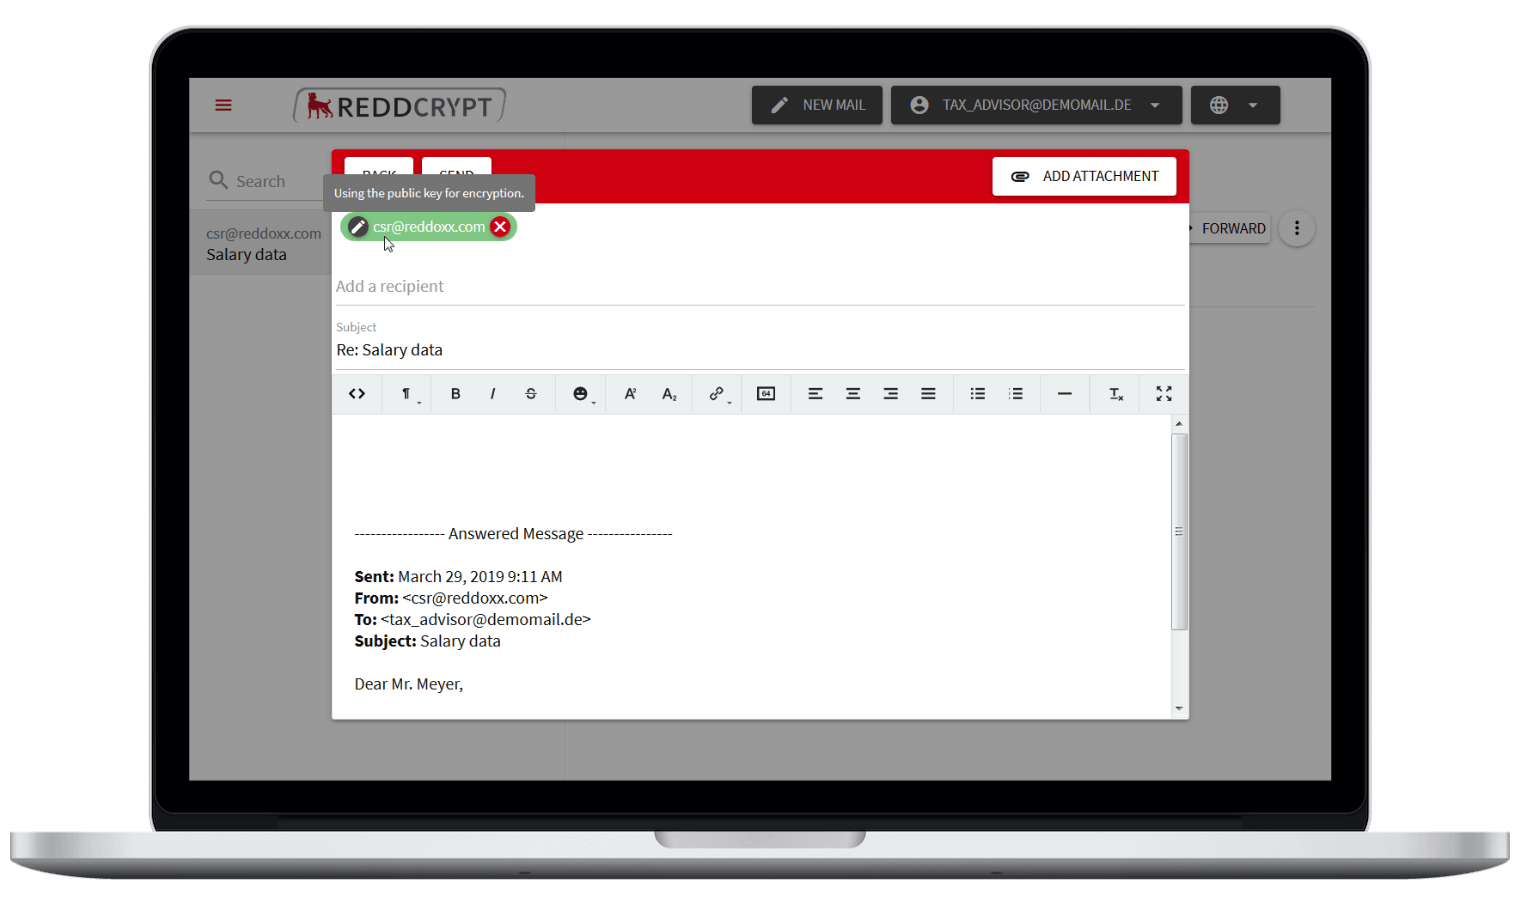 If you write an e-mail to a recipient who also has a REDDCRYPT account no password is required